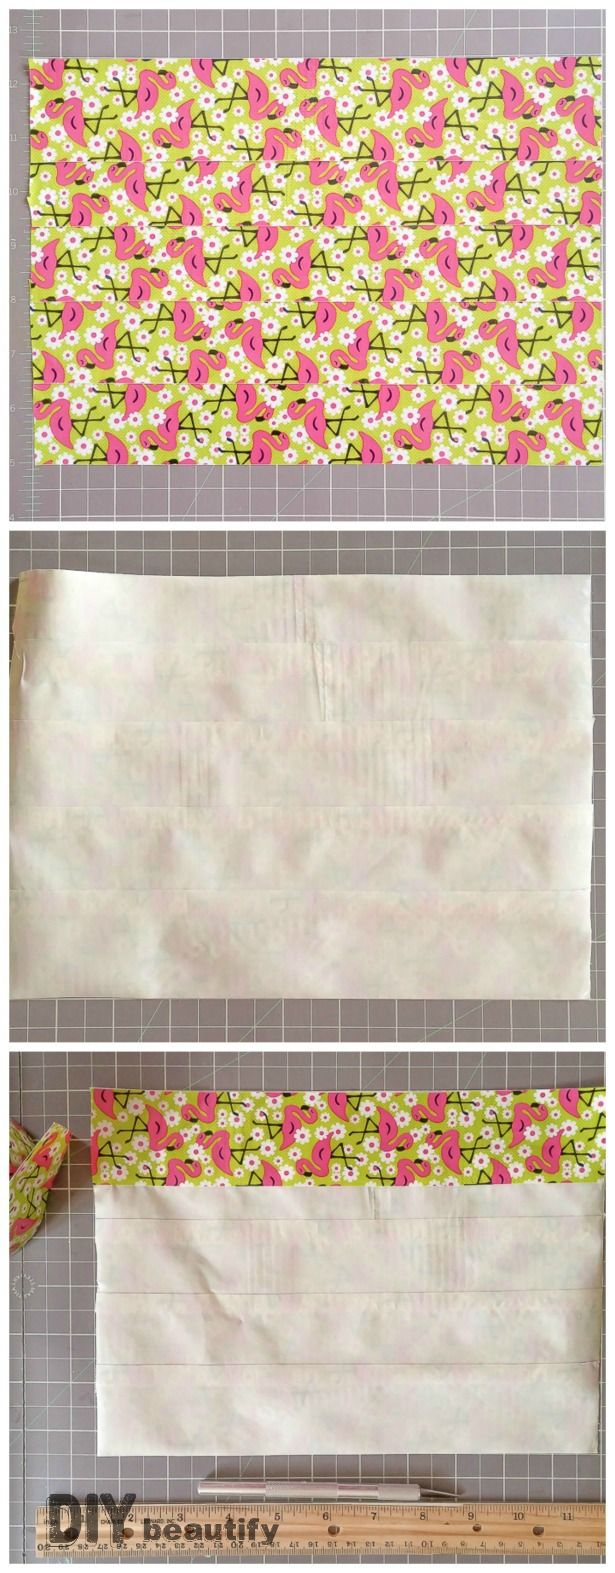 Creating a duct tape double-sided sheet for wallet | DIY beautify